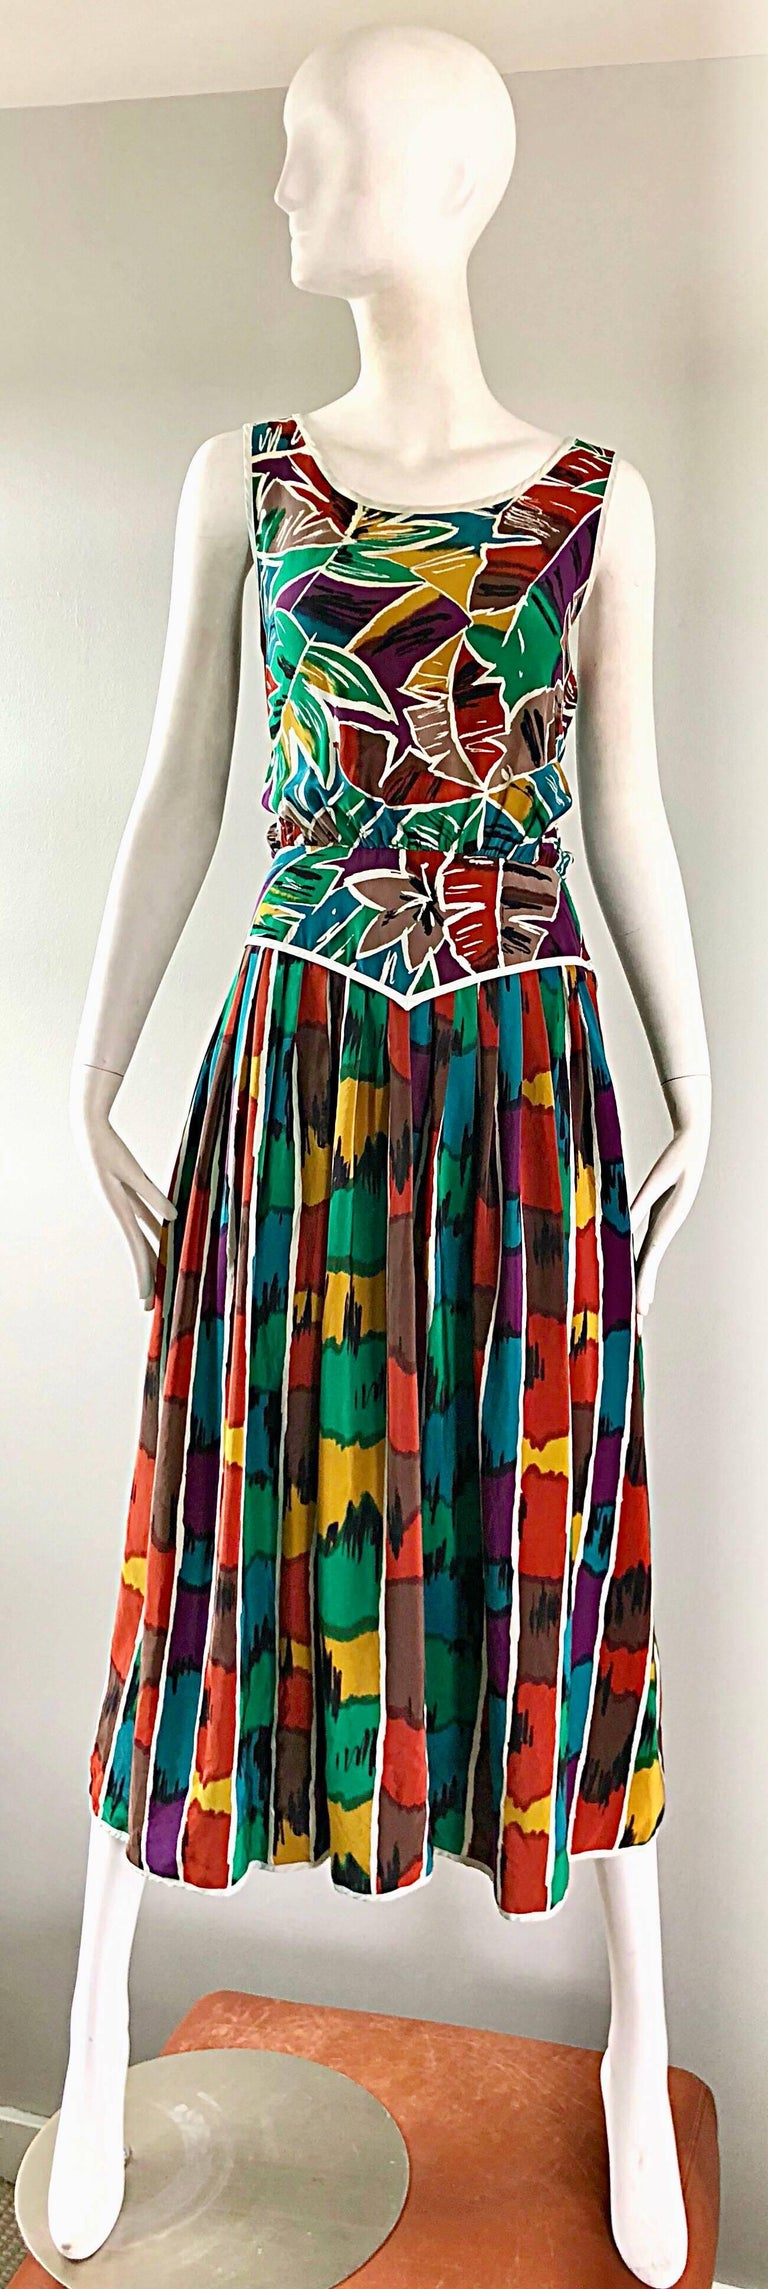 Chic vintage Oscar de la Renta kaleidoscope / Ikat tropical print silk midi dress! Features a flattering tailored bodice, with a loose fitting forgiving full skirt. Vibrant colors of rust, kelly green, burnt orange, teal blue, purple, white and